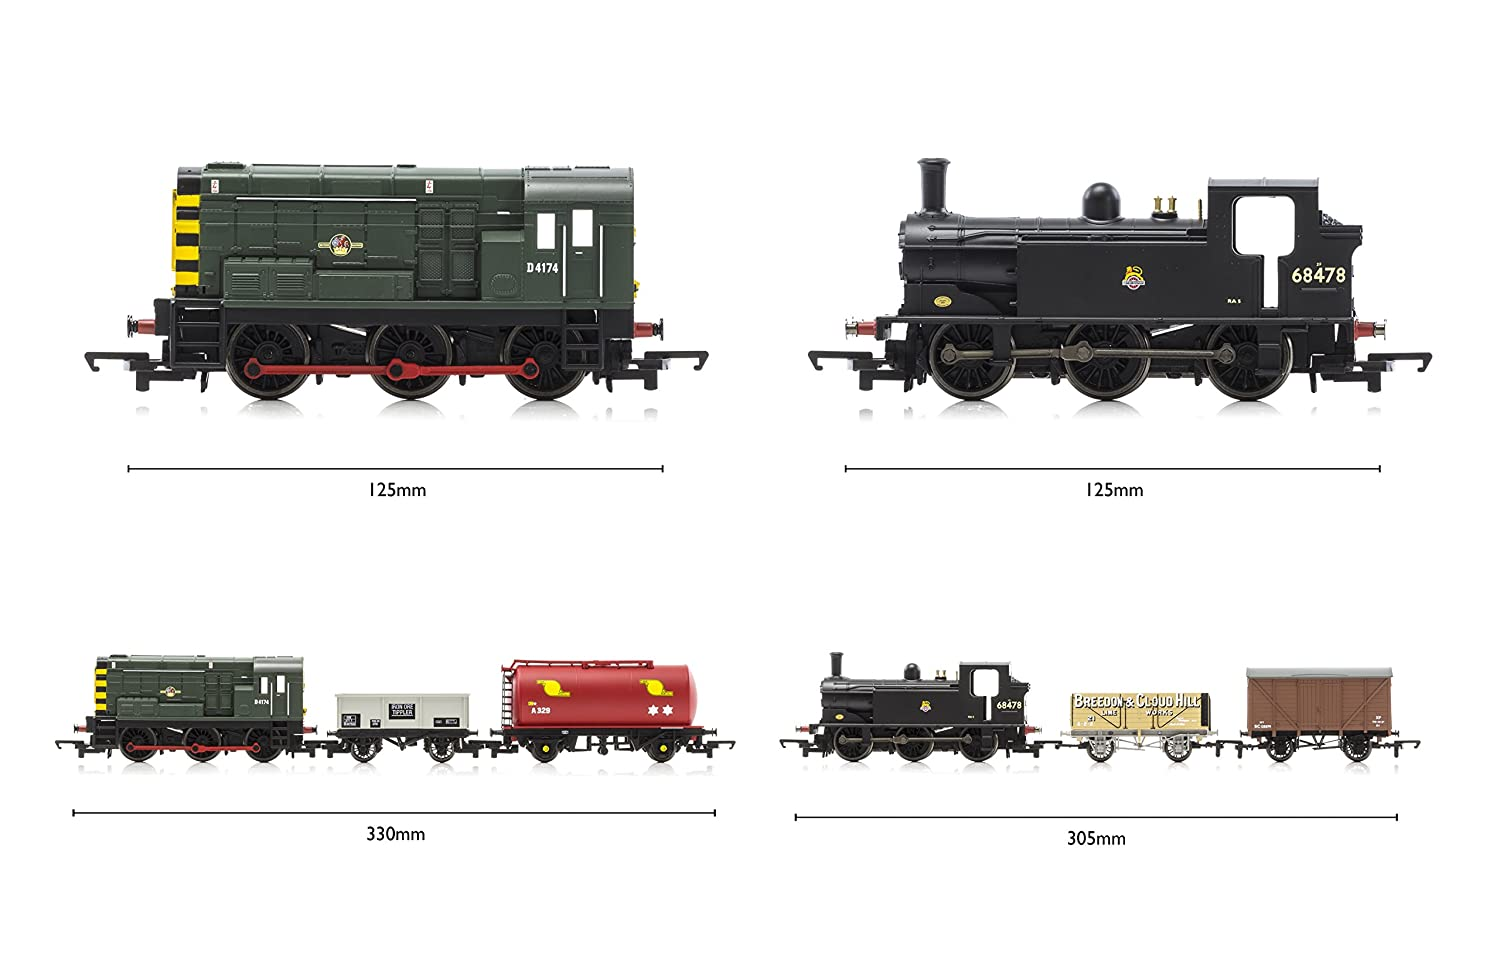 Hornby Hobbies Ltd R1126 Mixed Freight 00 Gauge Dcc Electric Train Fashion Model Railroading Electronics That Electronic Set Toys Games